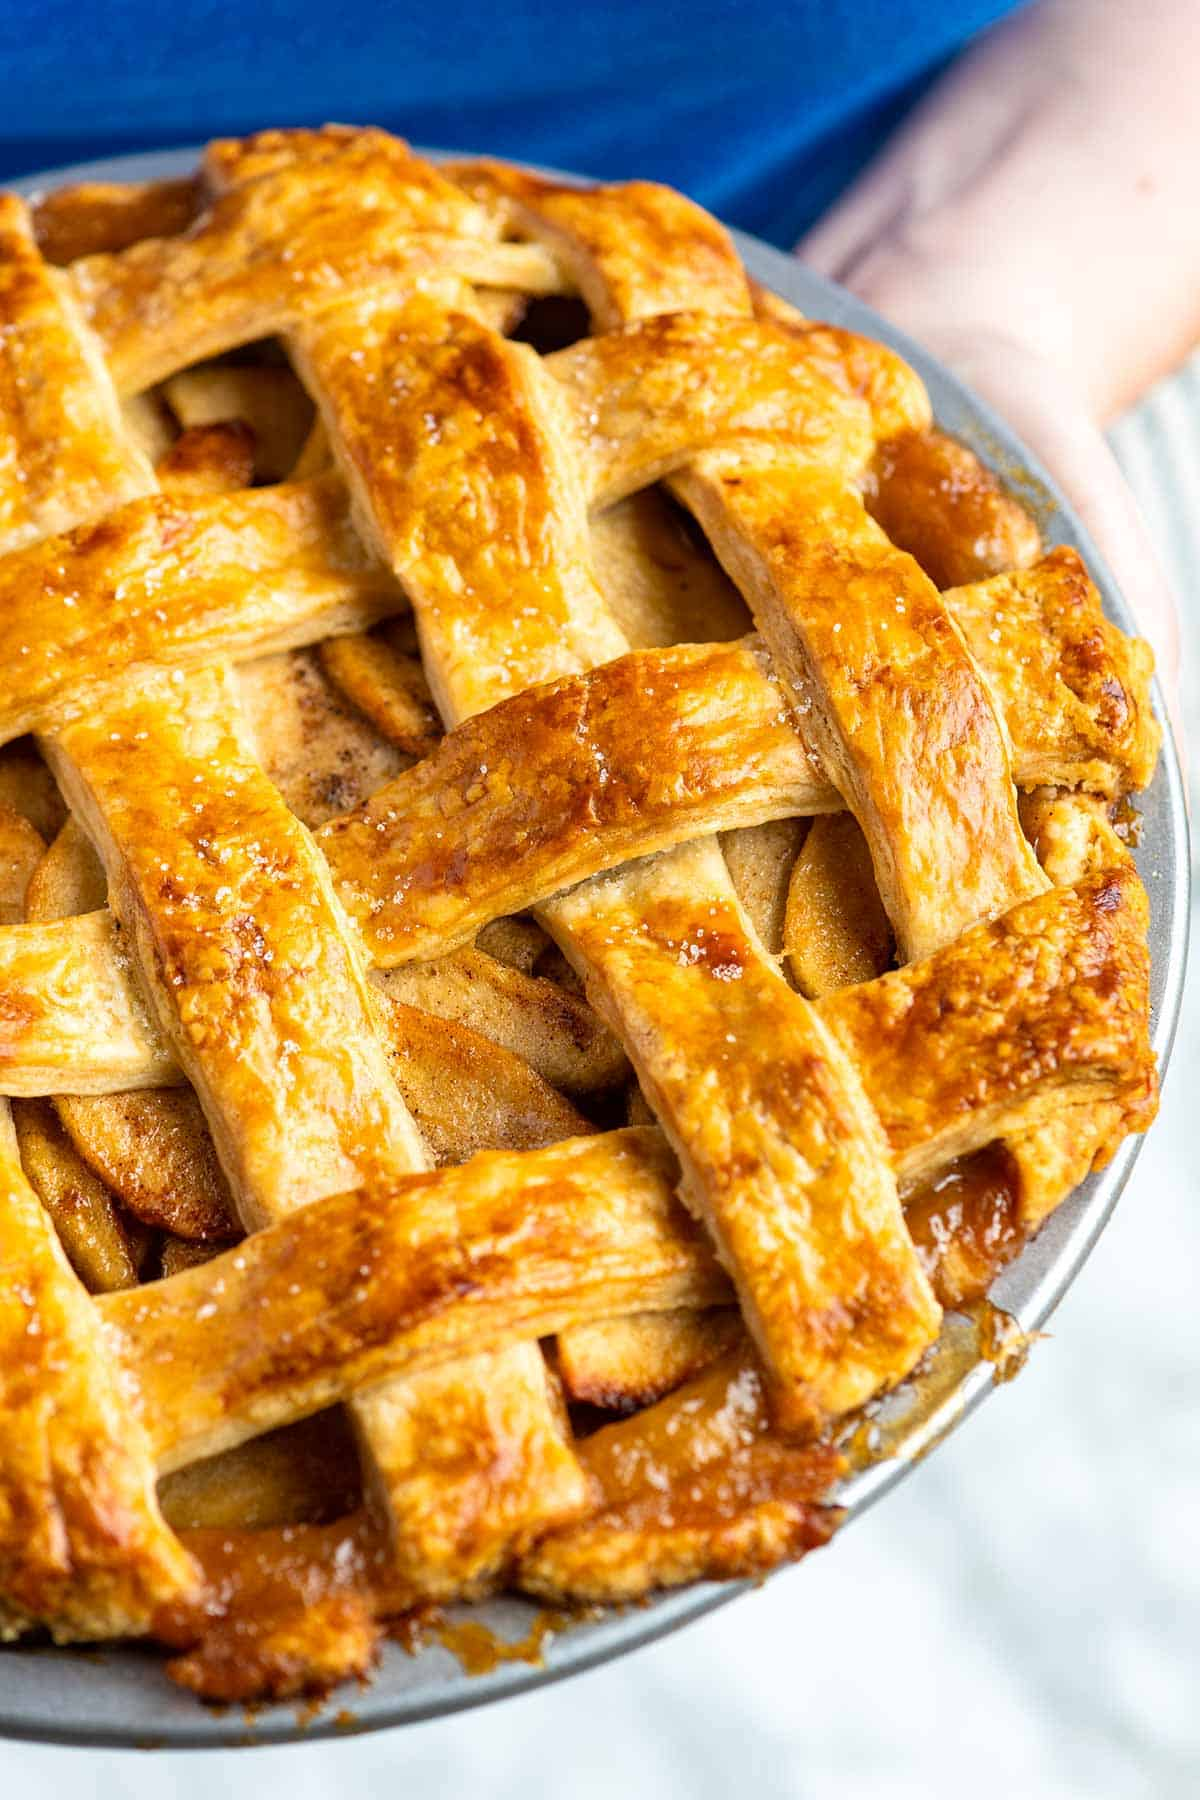 Our favorite recipe for making classic apple pie from scratch. This recipe guarantees apple pie with perfectly cooked (not mushy) apples surrounded by a thickened and gently spiced sauce all baked inside a flaky, golden brown crust.